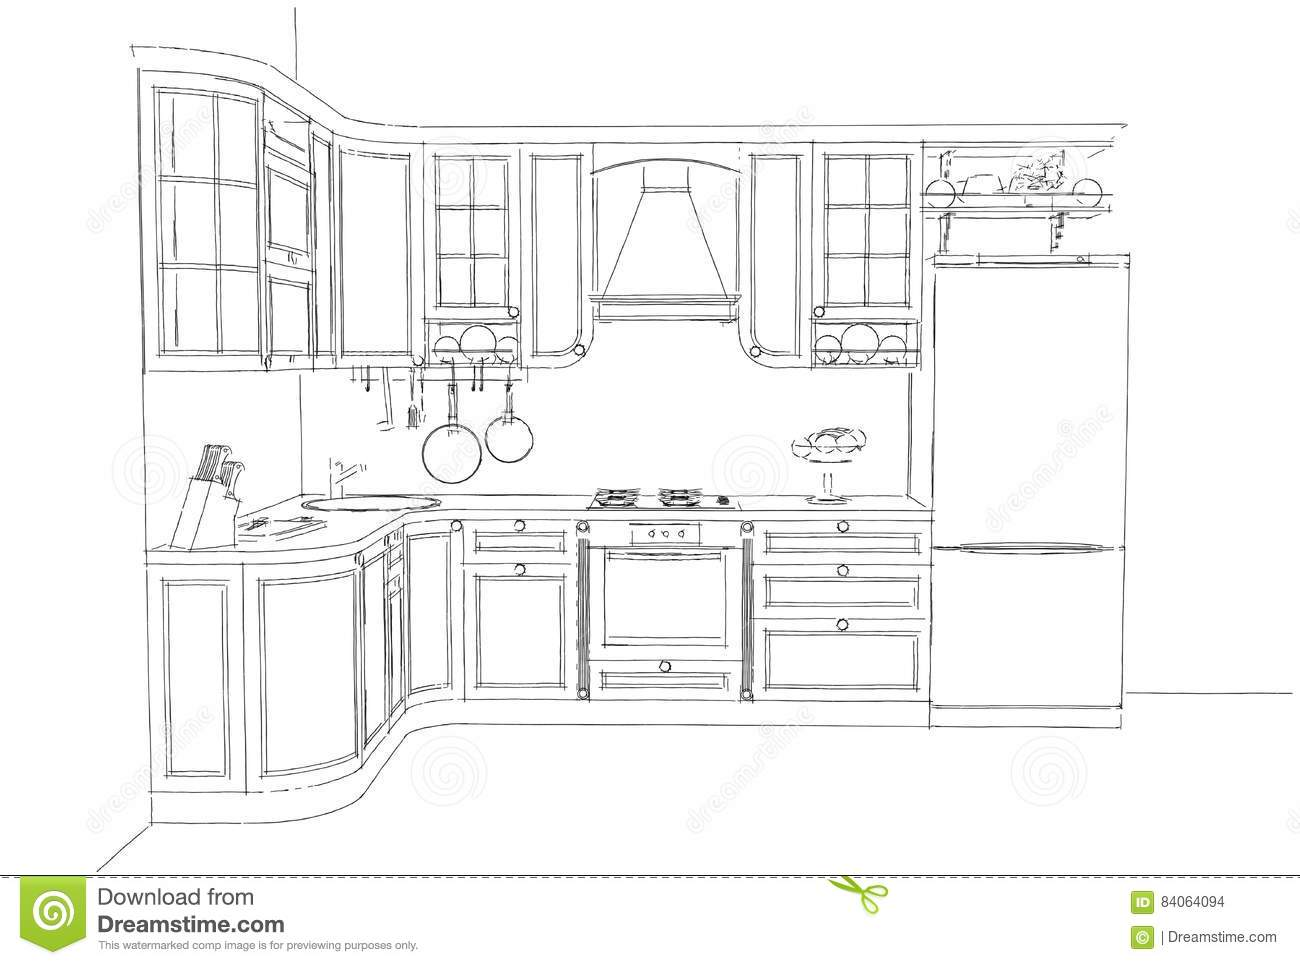 Sketch drawing of classic kitchen interior 3d rendering illustration 3d perspective